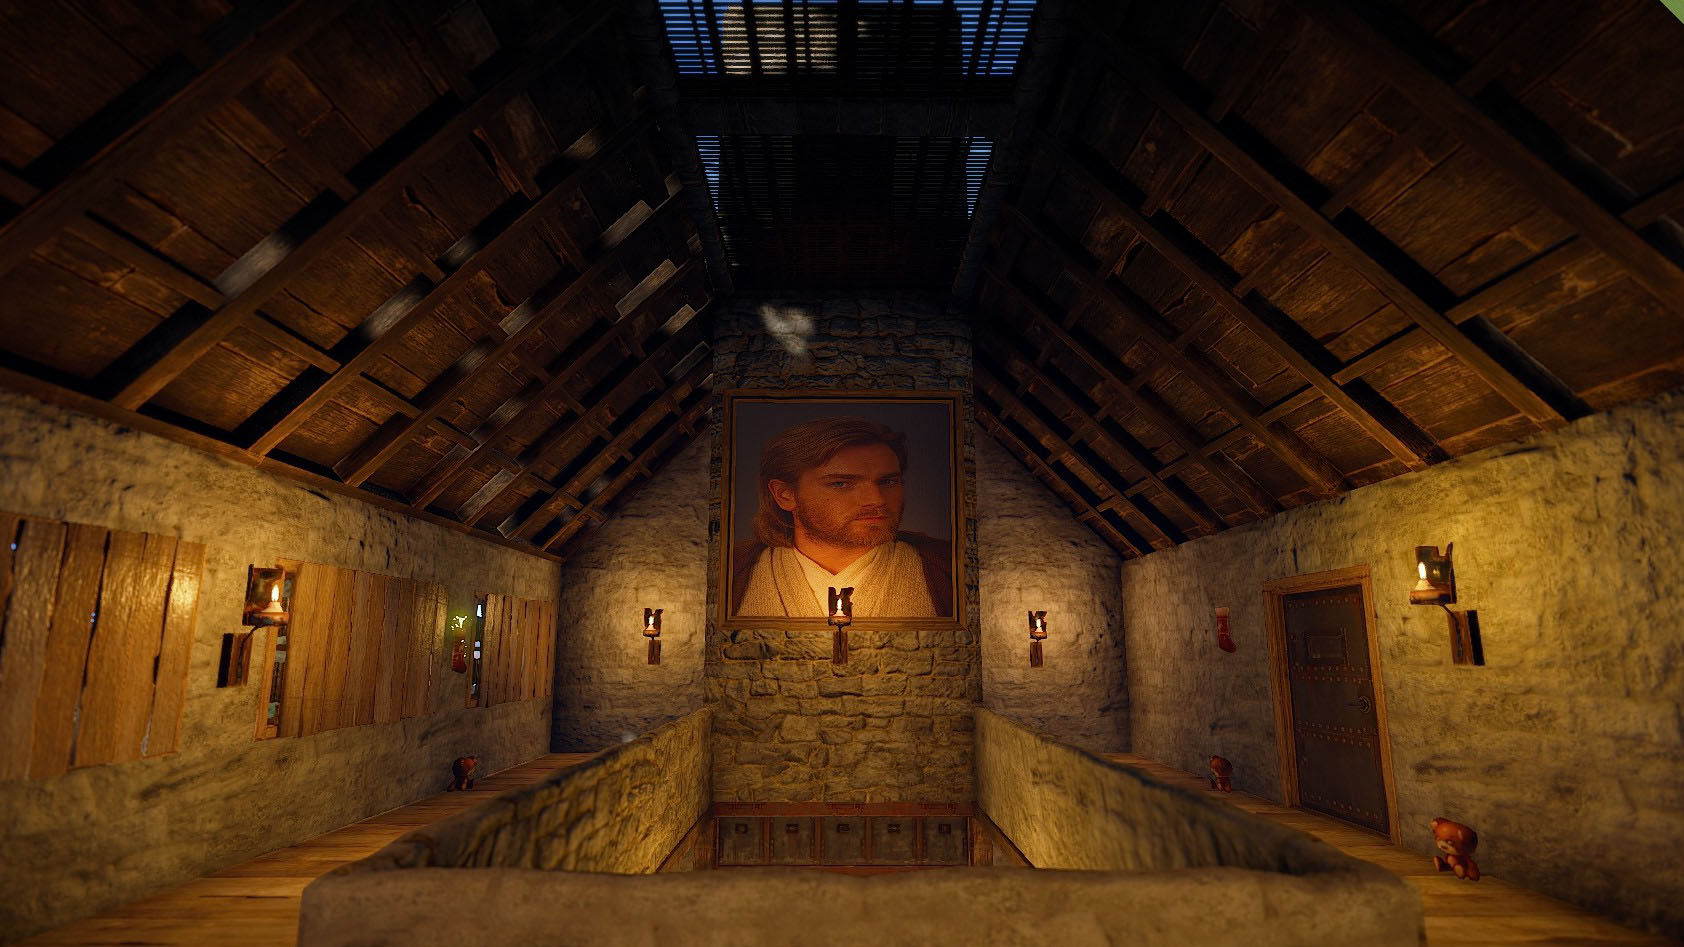 Screenshot from the game Rust, depicting the interior of a church.